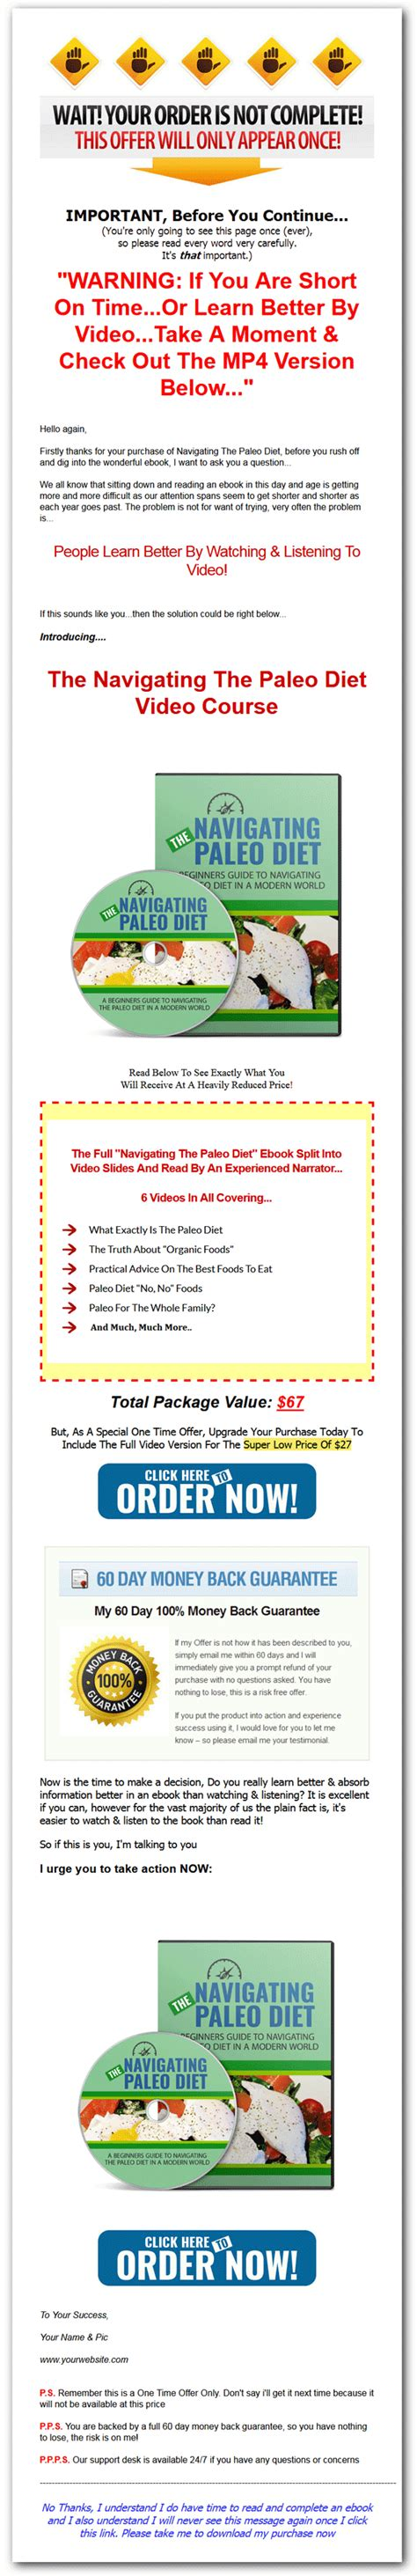 paleo diet a and easy guide for beginners the secrets of rapid weight loss and a healthy lifestyle using the paleo diet books paleo diet beginners guide ebook and master resale